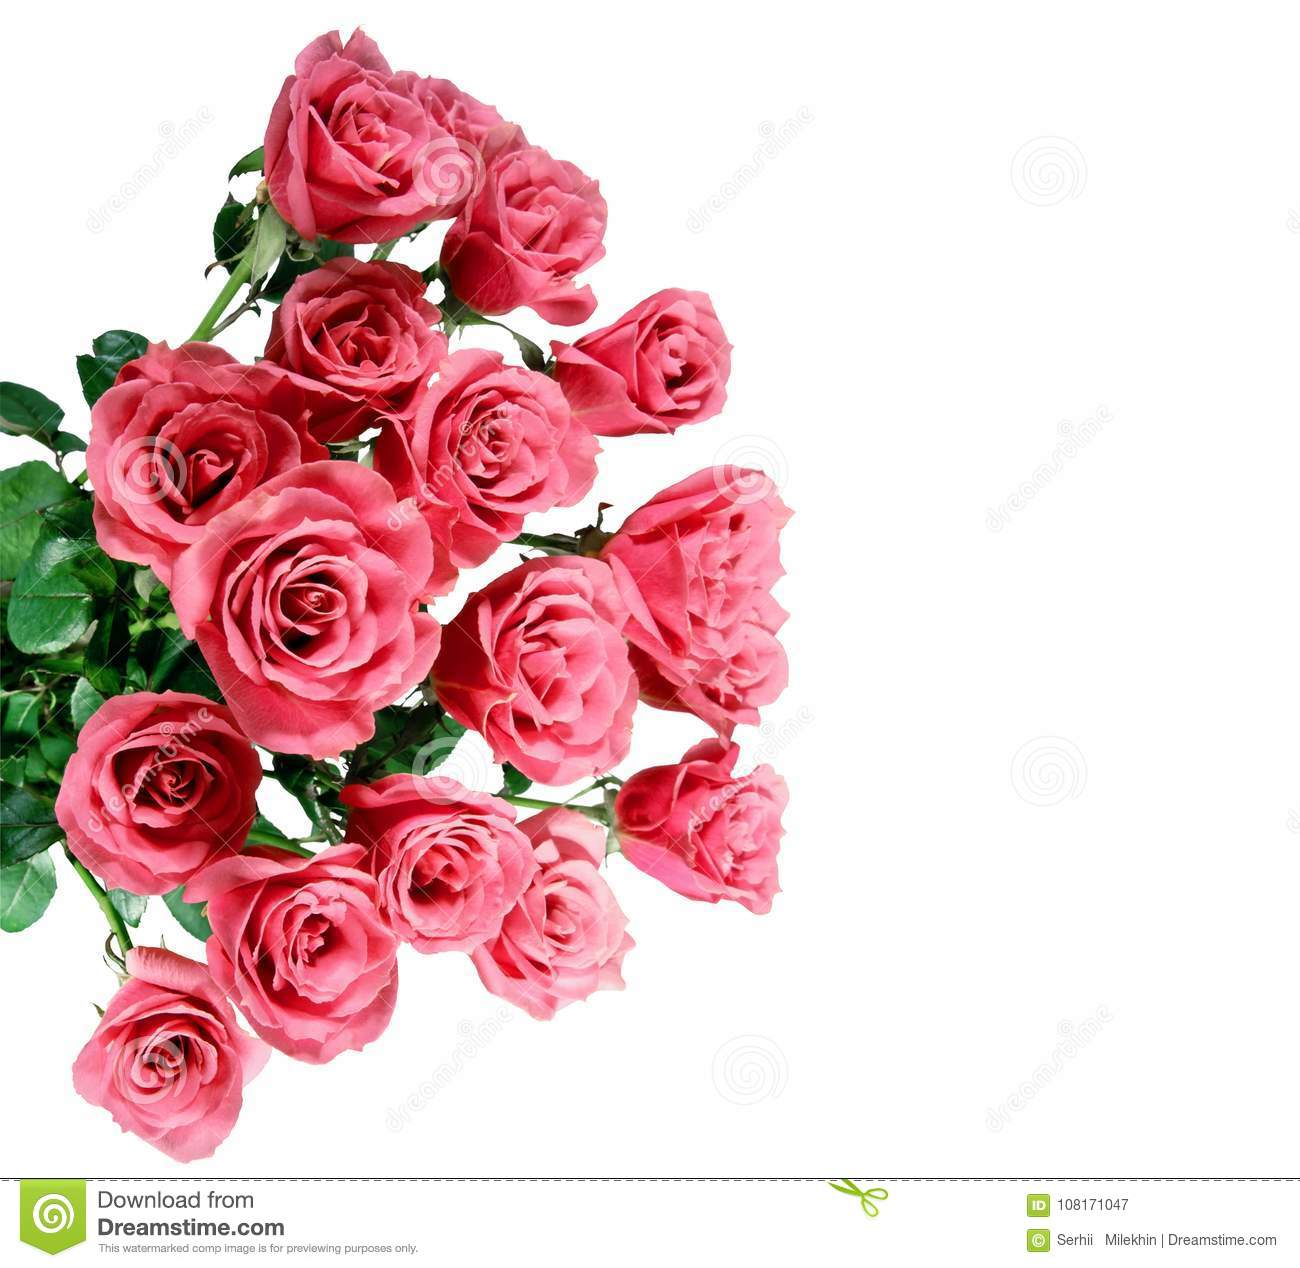 Flowers wall background with amazing roses stock image image of flowers wall background with amazing roses izmirmasajfo